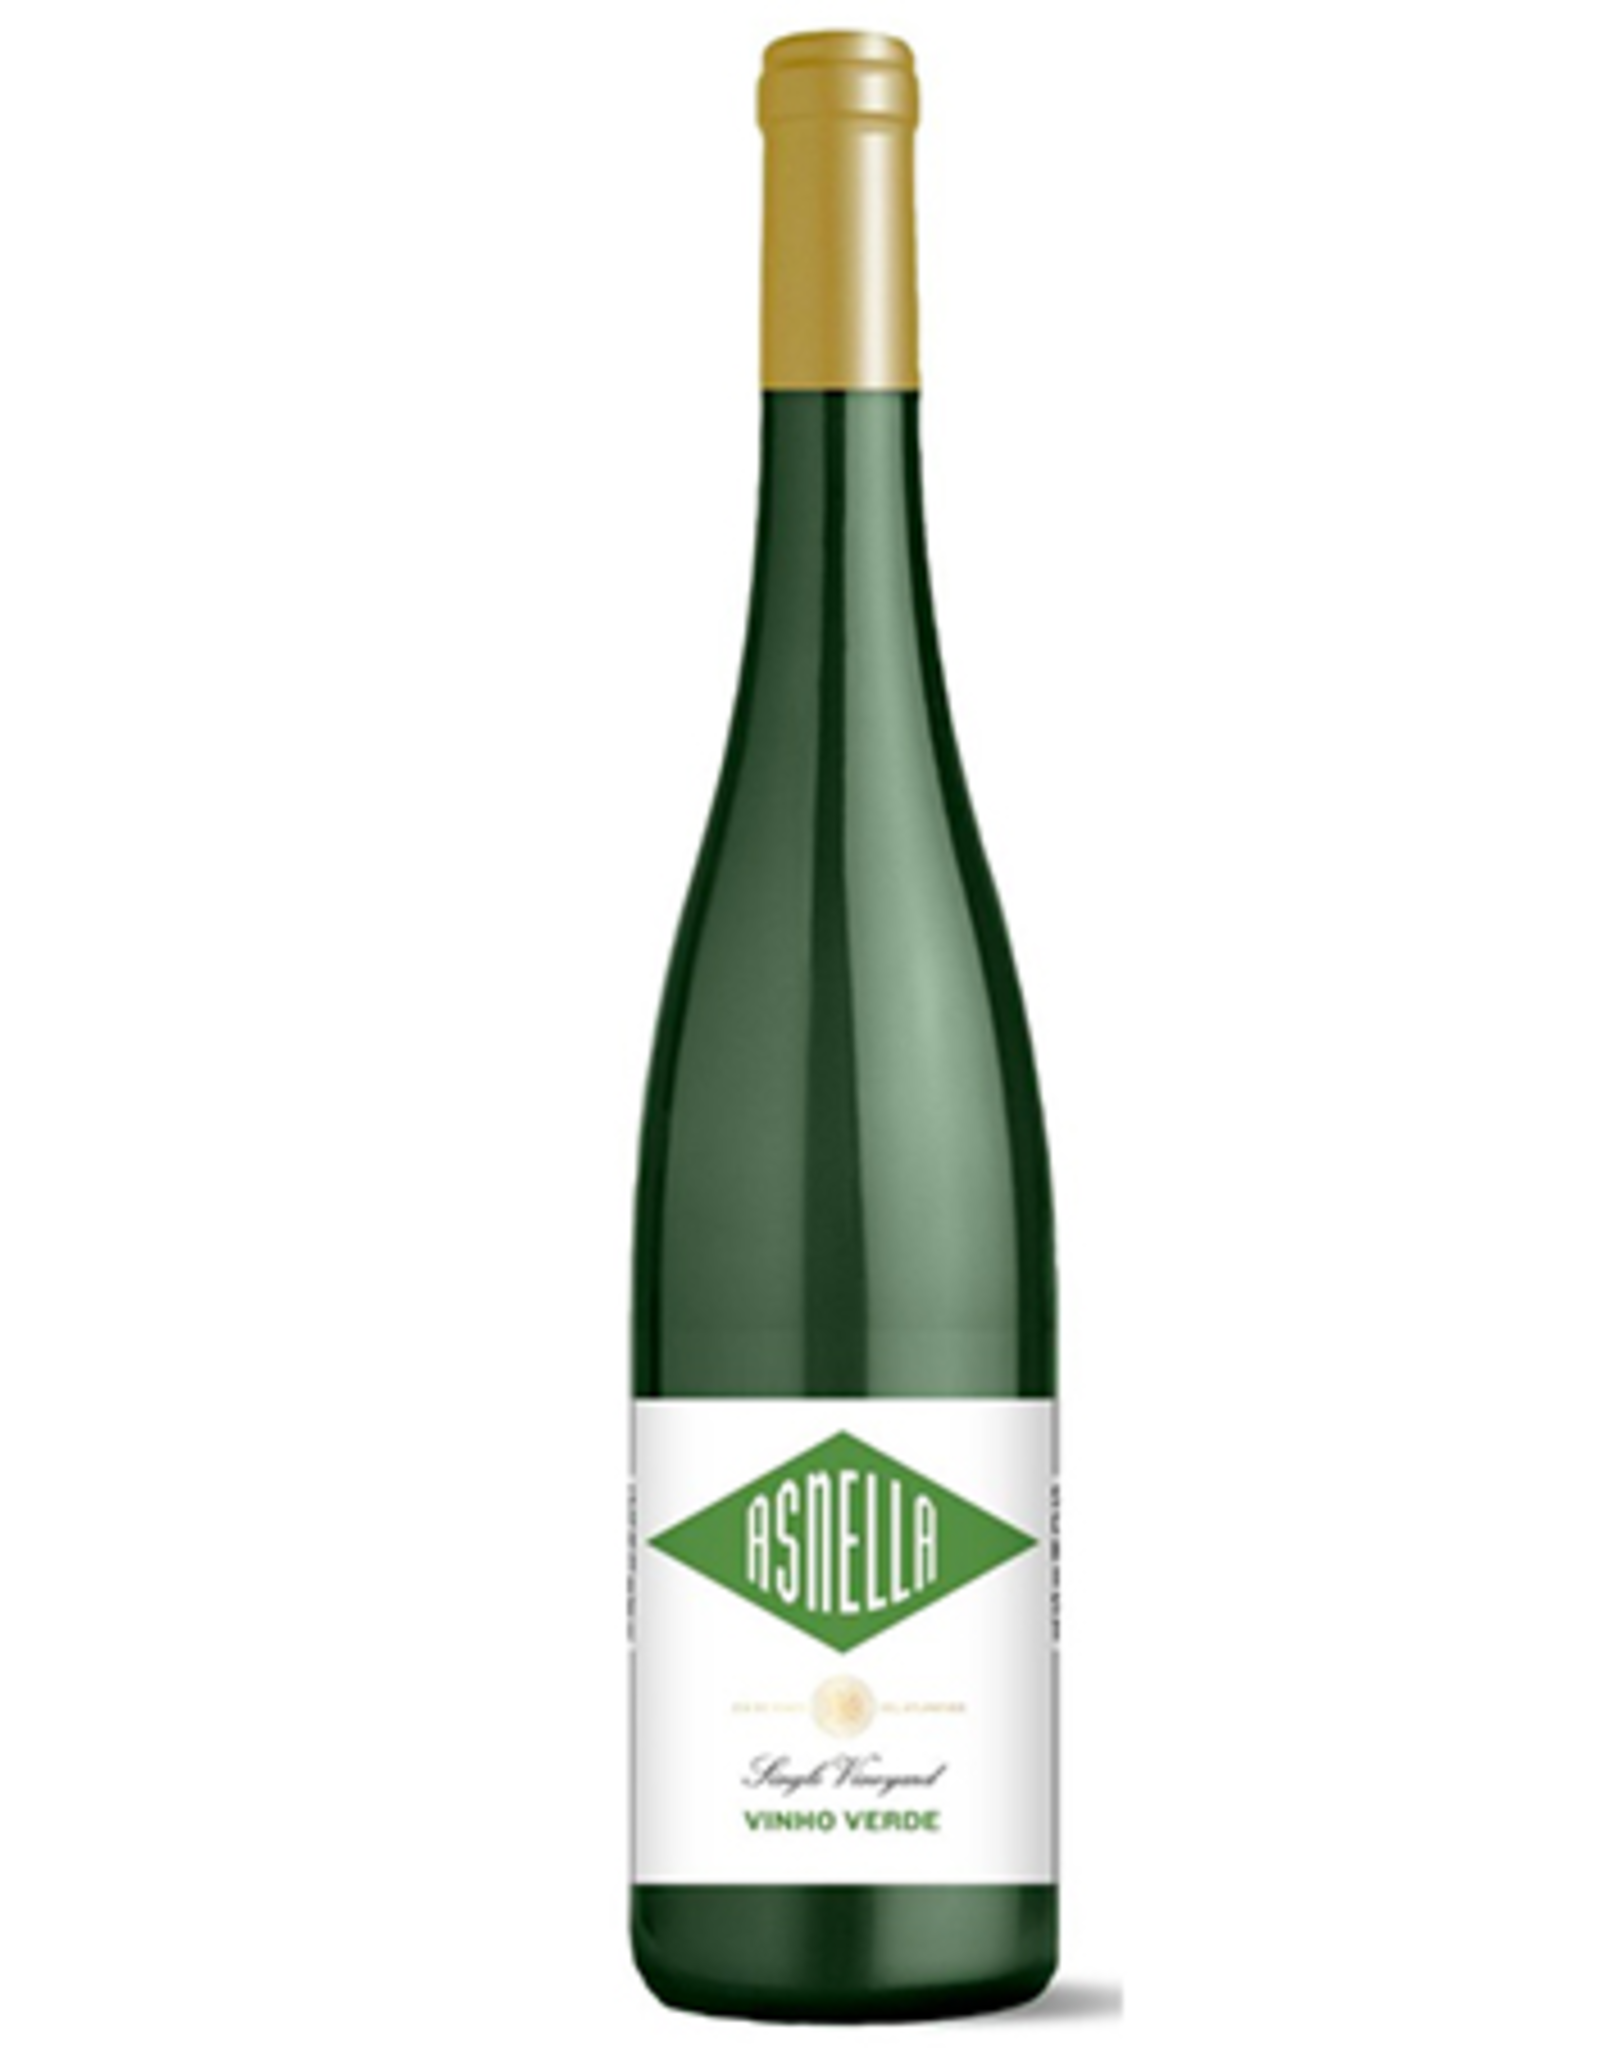 Asnella Vinho Verde Single Vineyard 2019